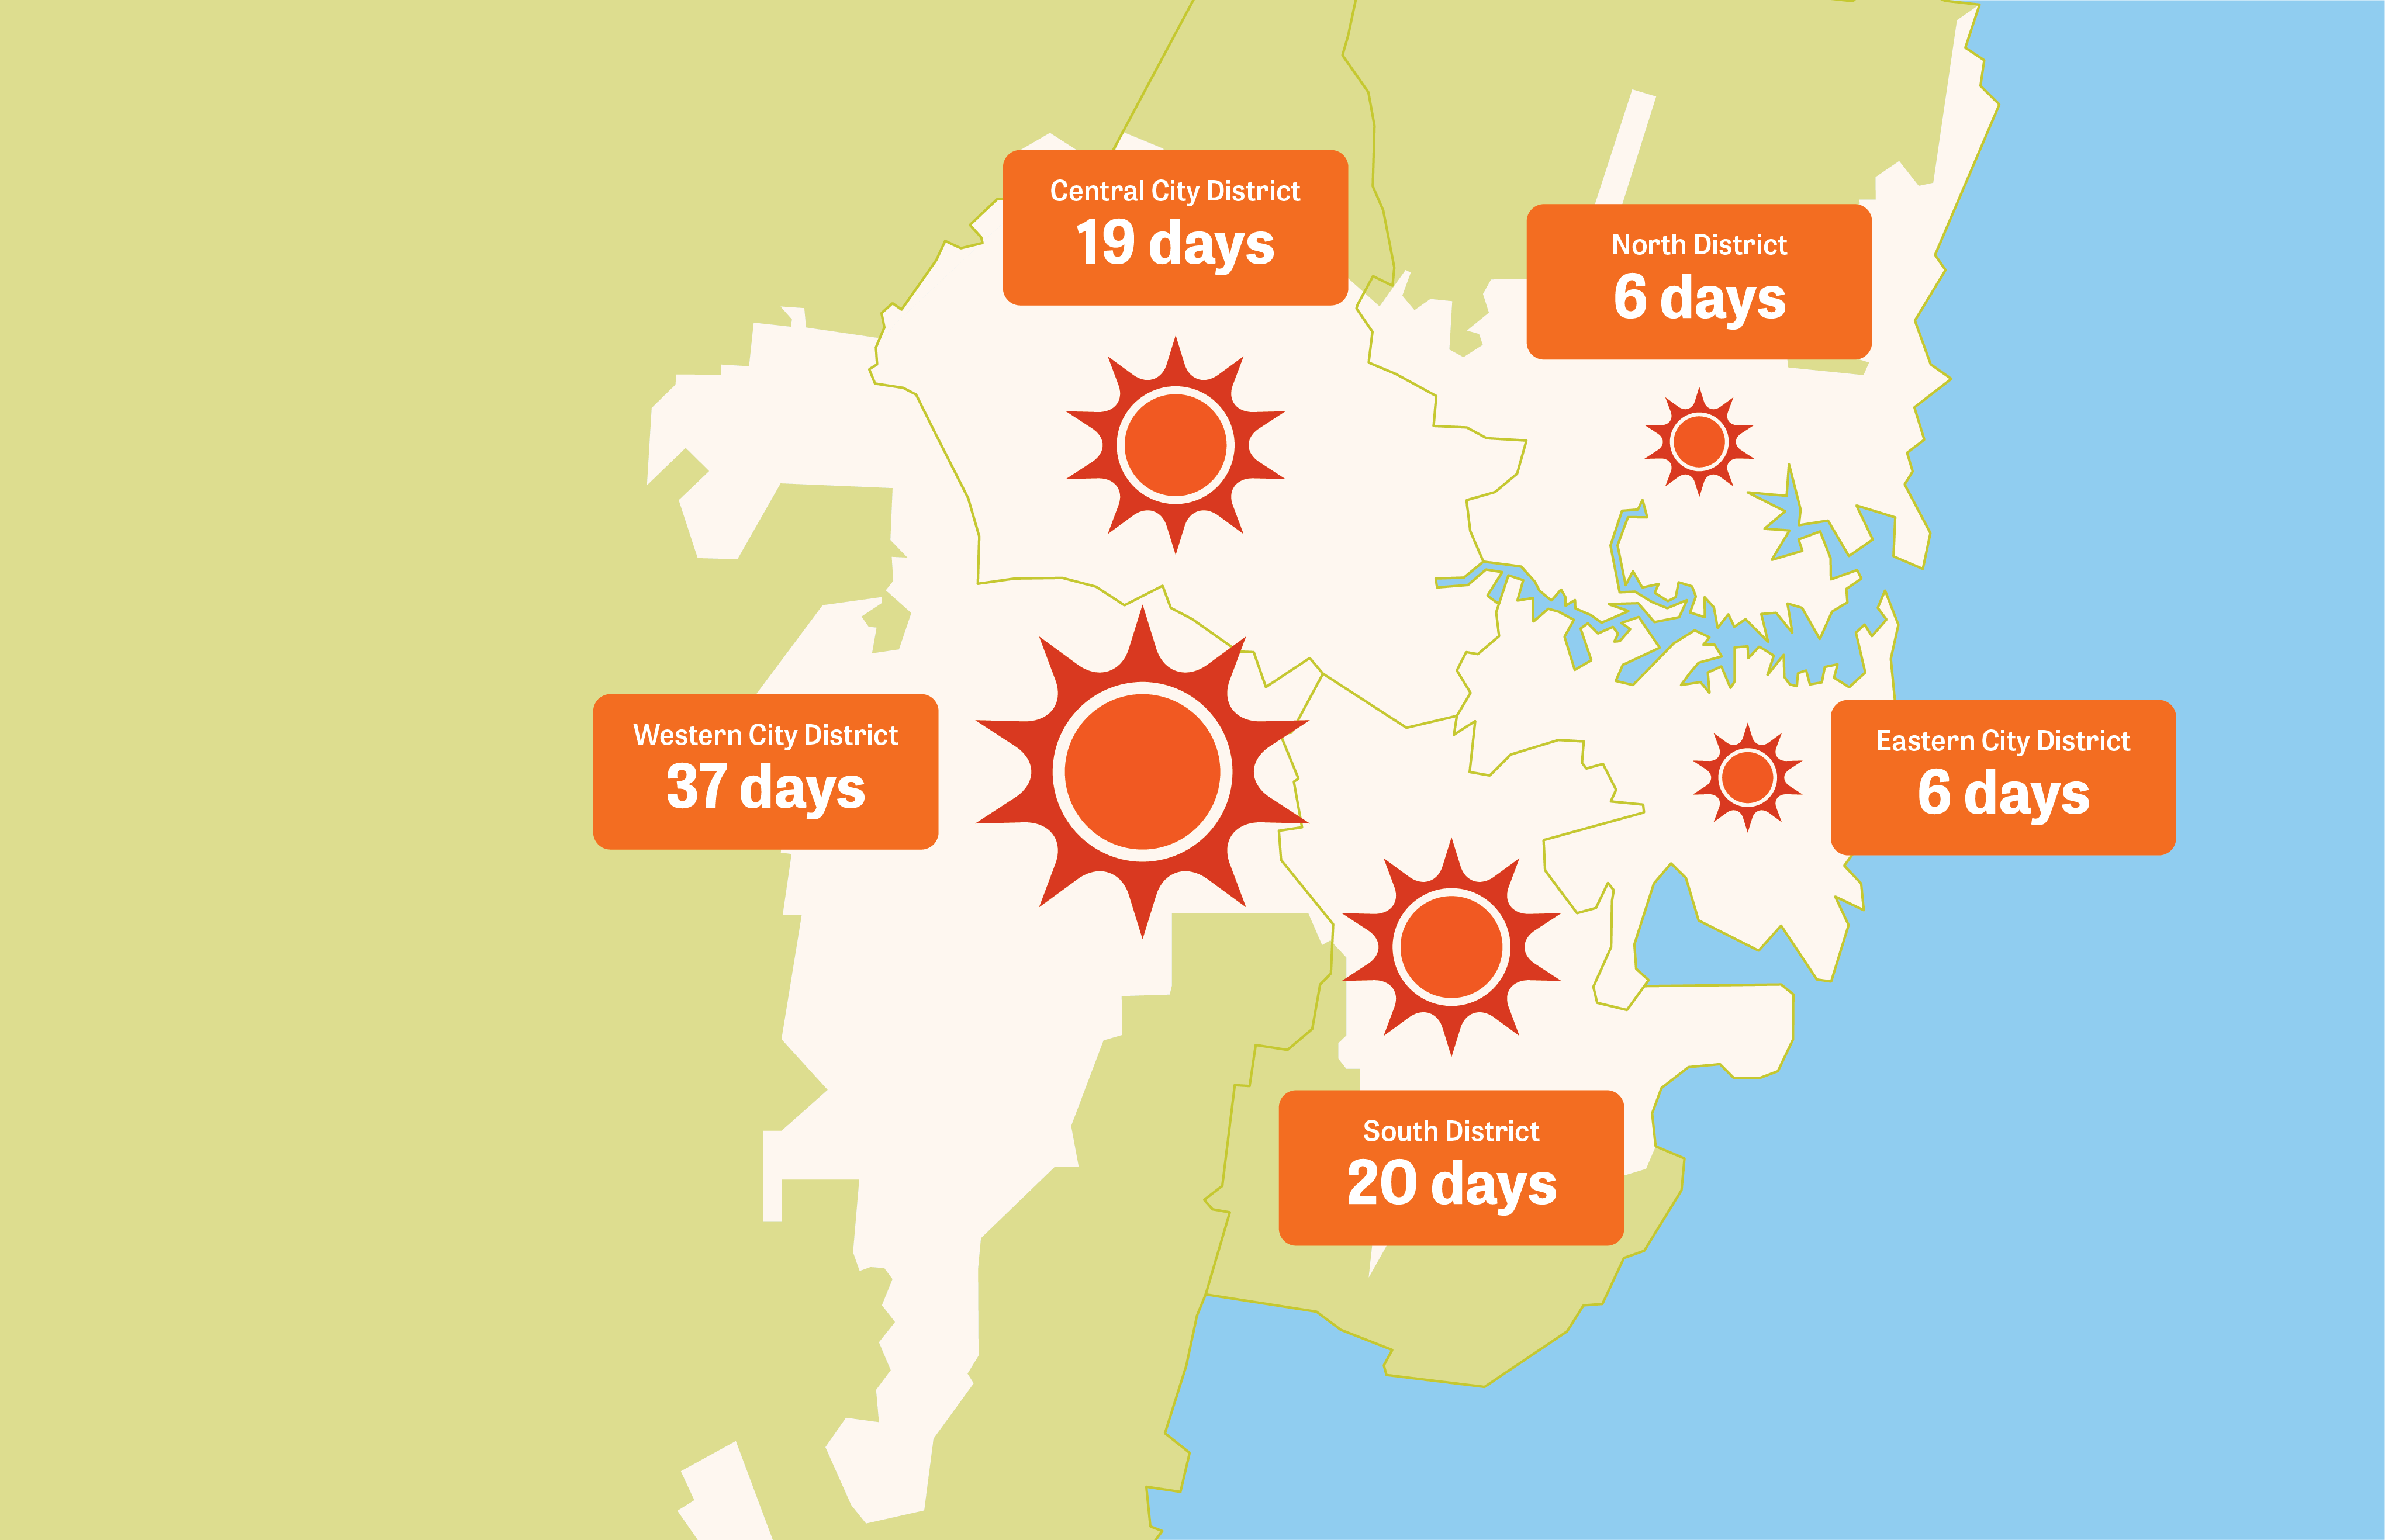 Number of days over 35 degrees Celsius (July 2018-June 2019)